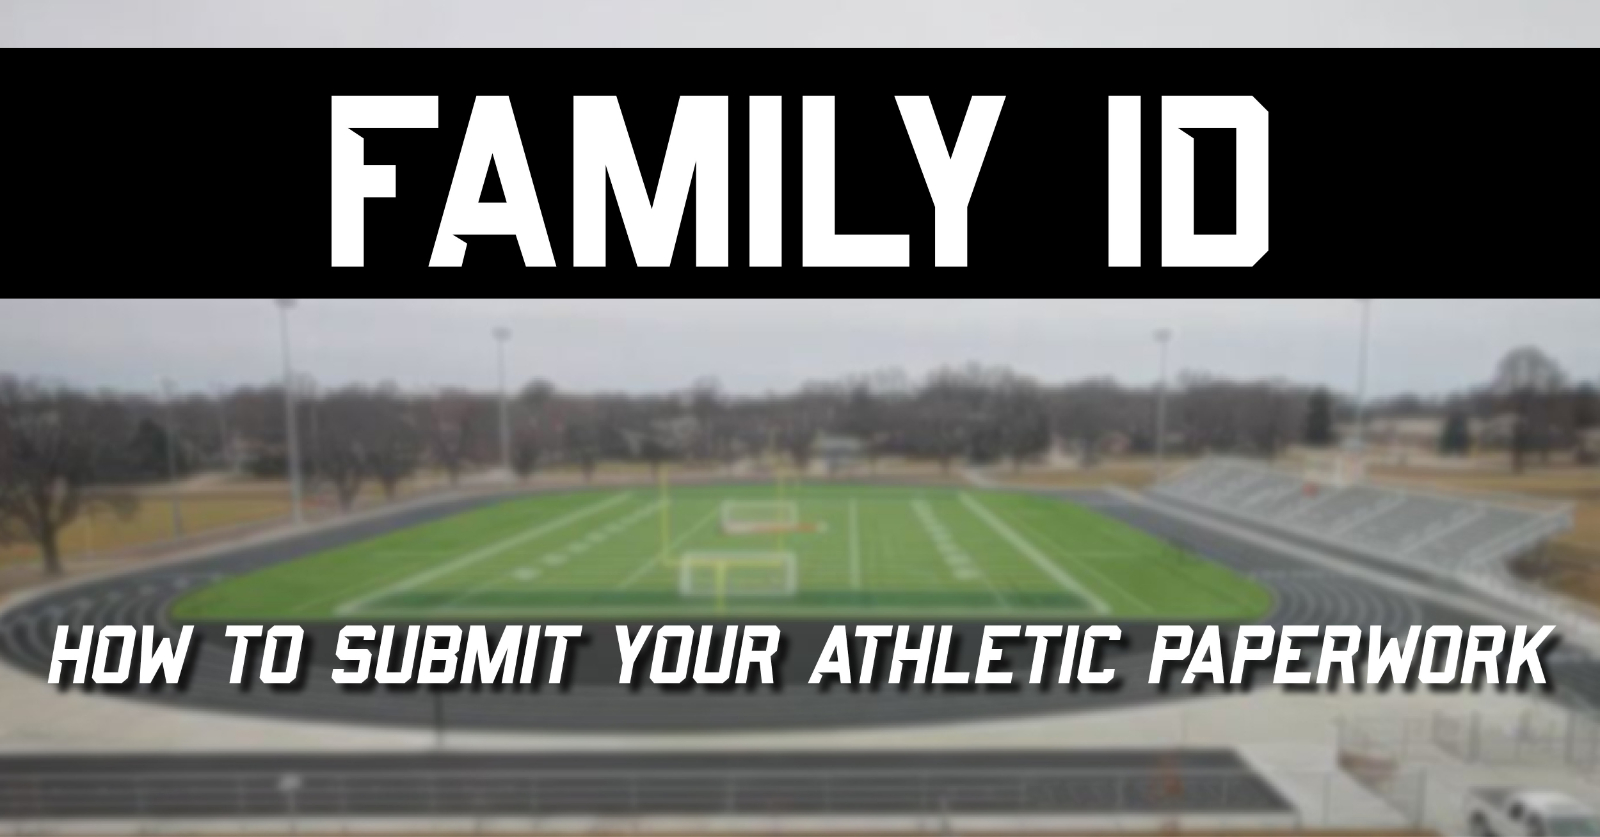 How to submit athletic paperwork FamilyID graphic